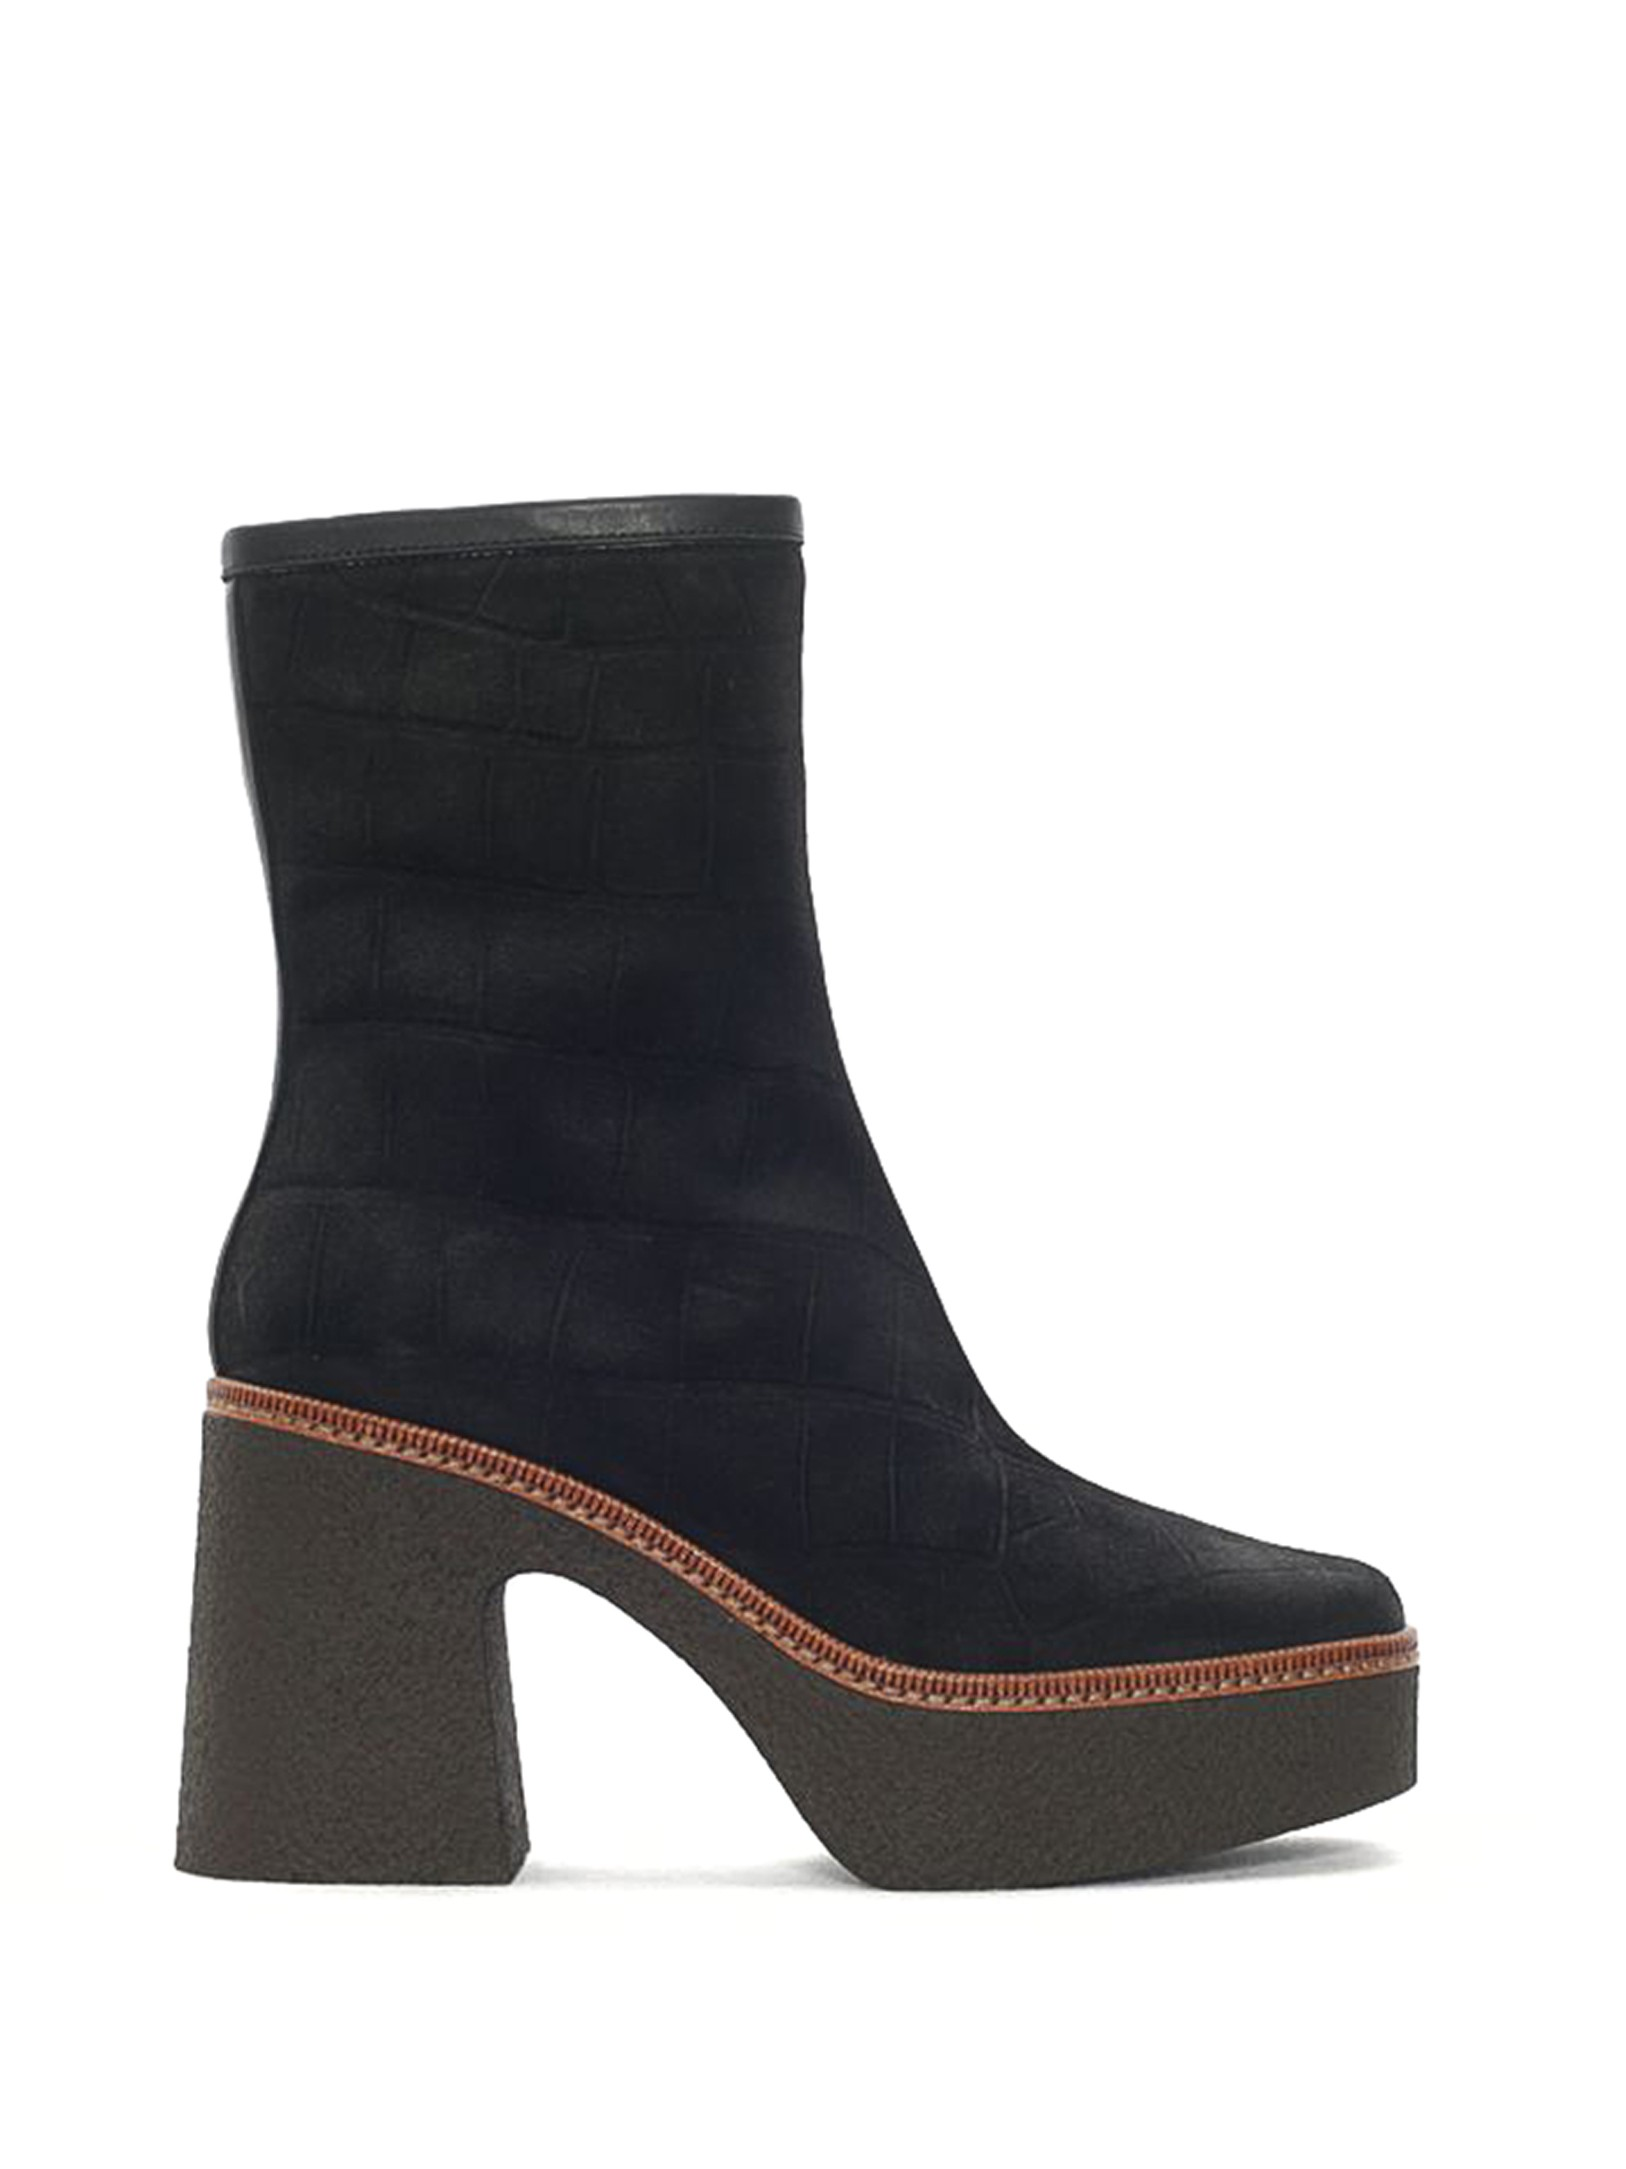 CARLA BLACK MAXI ANKLE BOOT